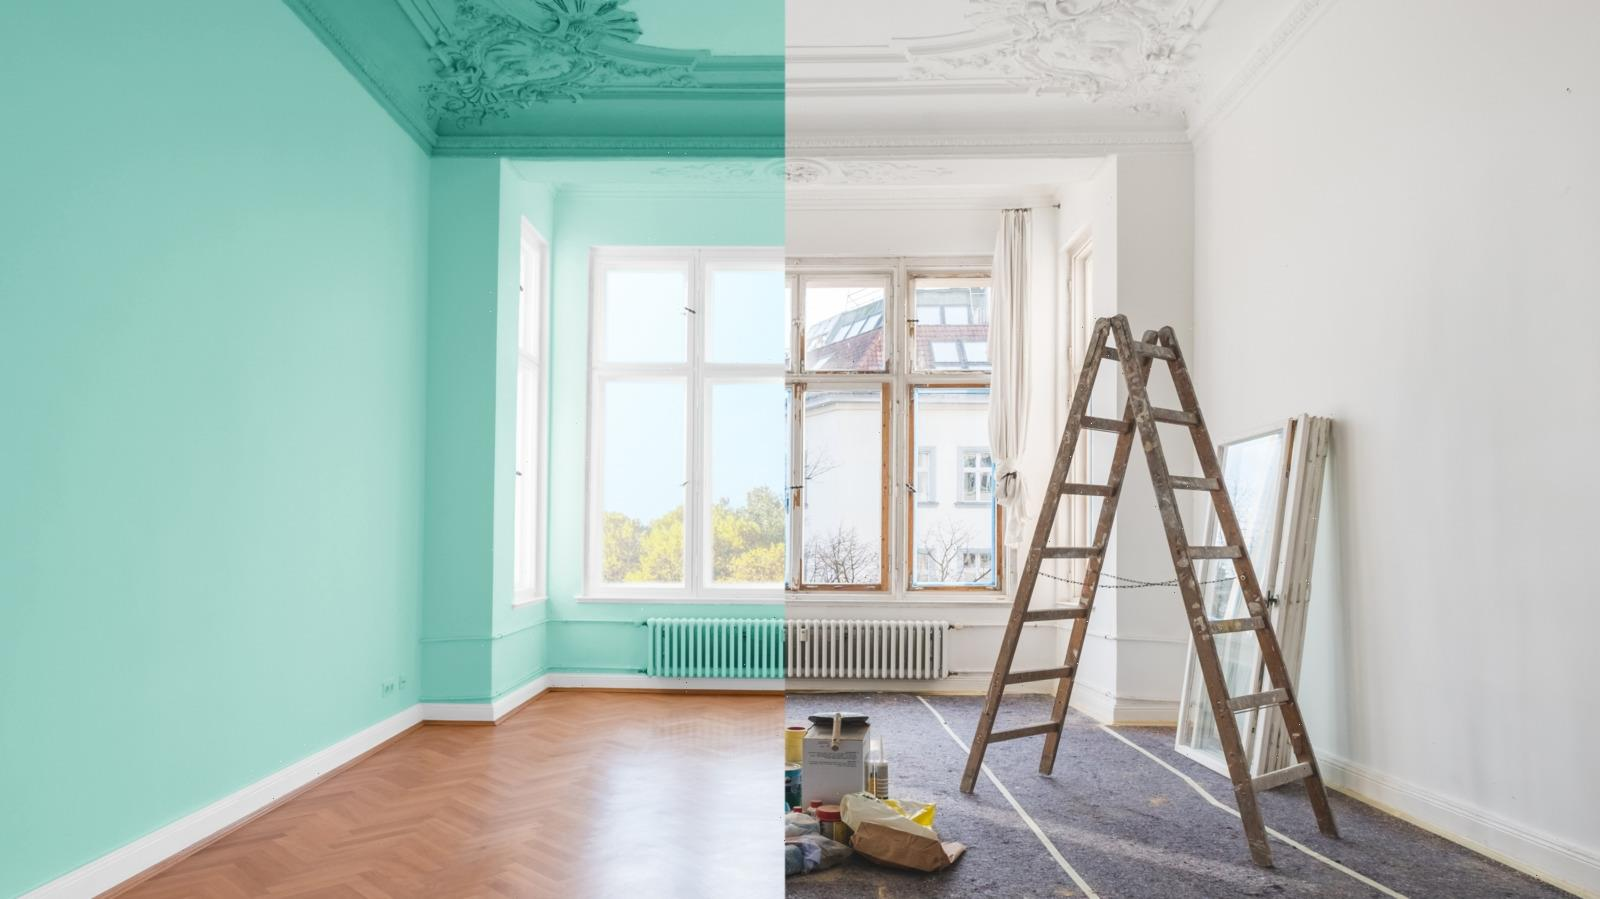 41% Of People Say They'll Regret This Home Trend In 10 Years